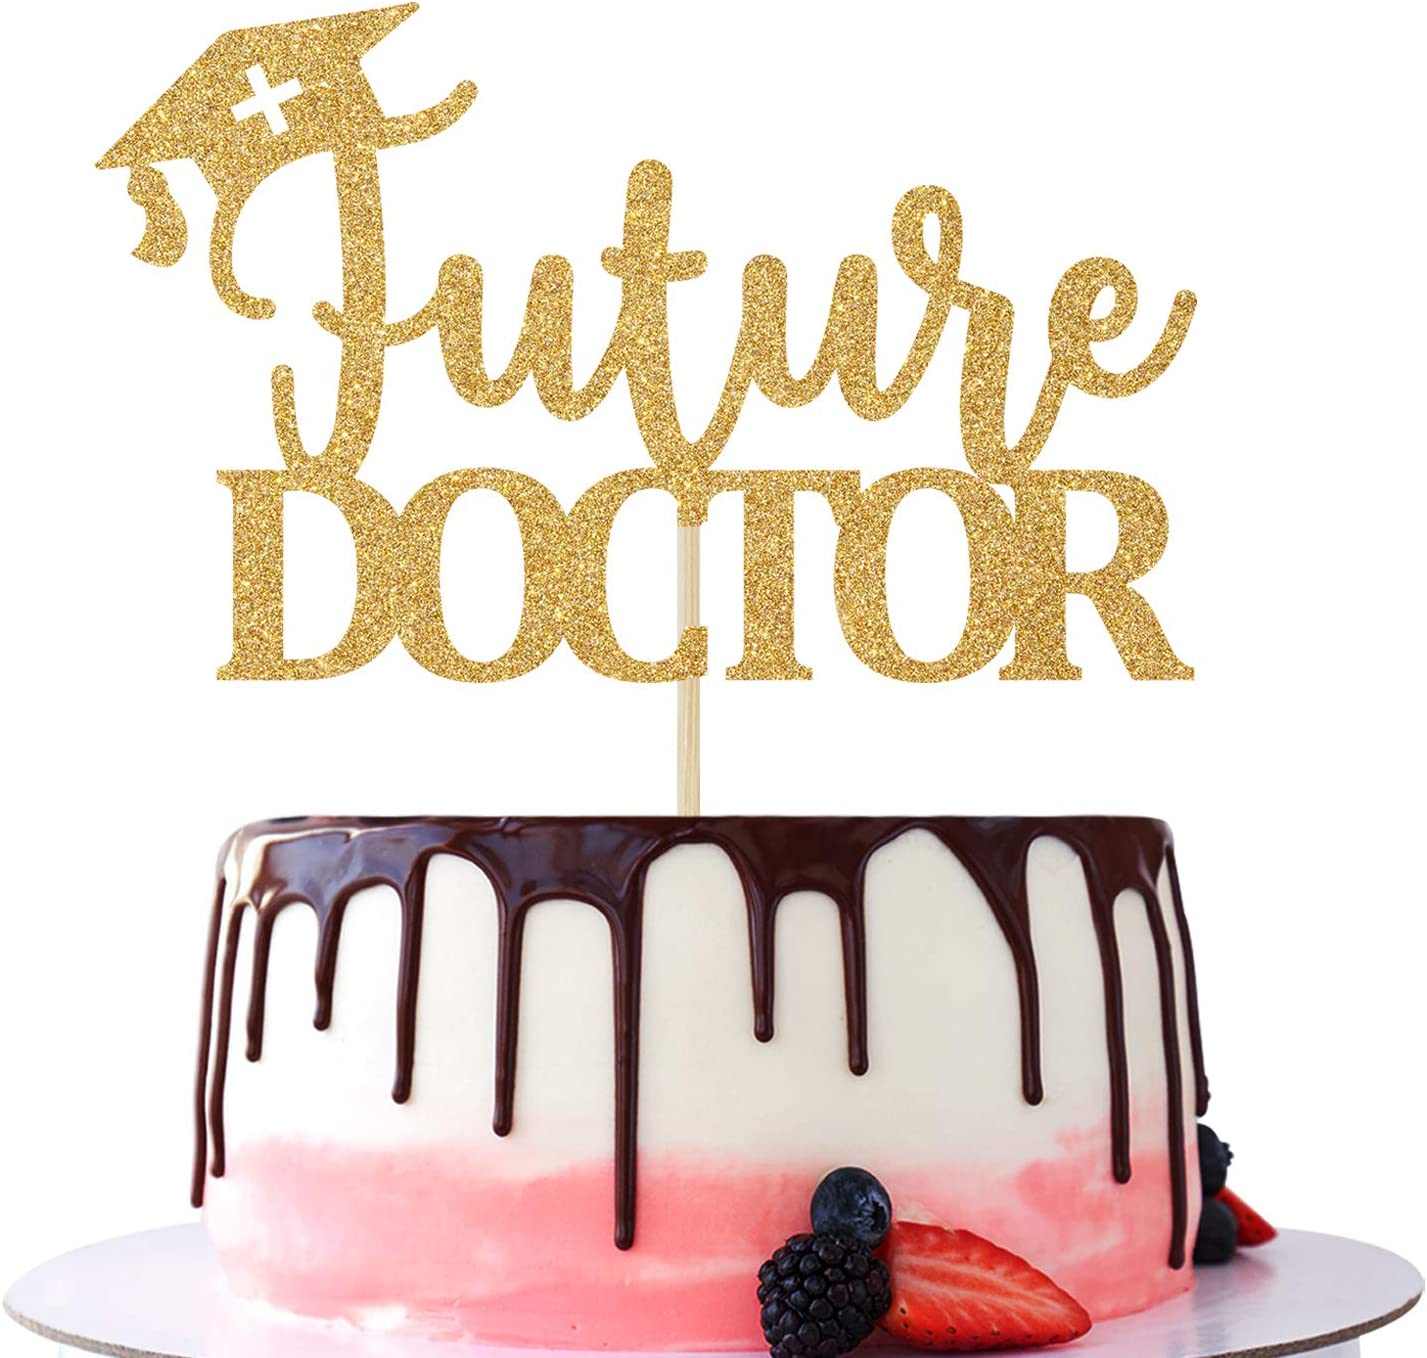 Future Doctor Cake Topper - Class of 2021 Congrats Grad, Medical School Doctor Themed Graduation Party Cake Decorations Supplies Mixed Gold Glitter